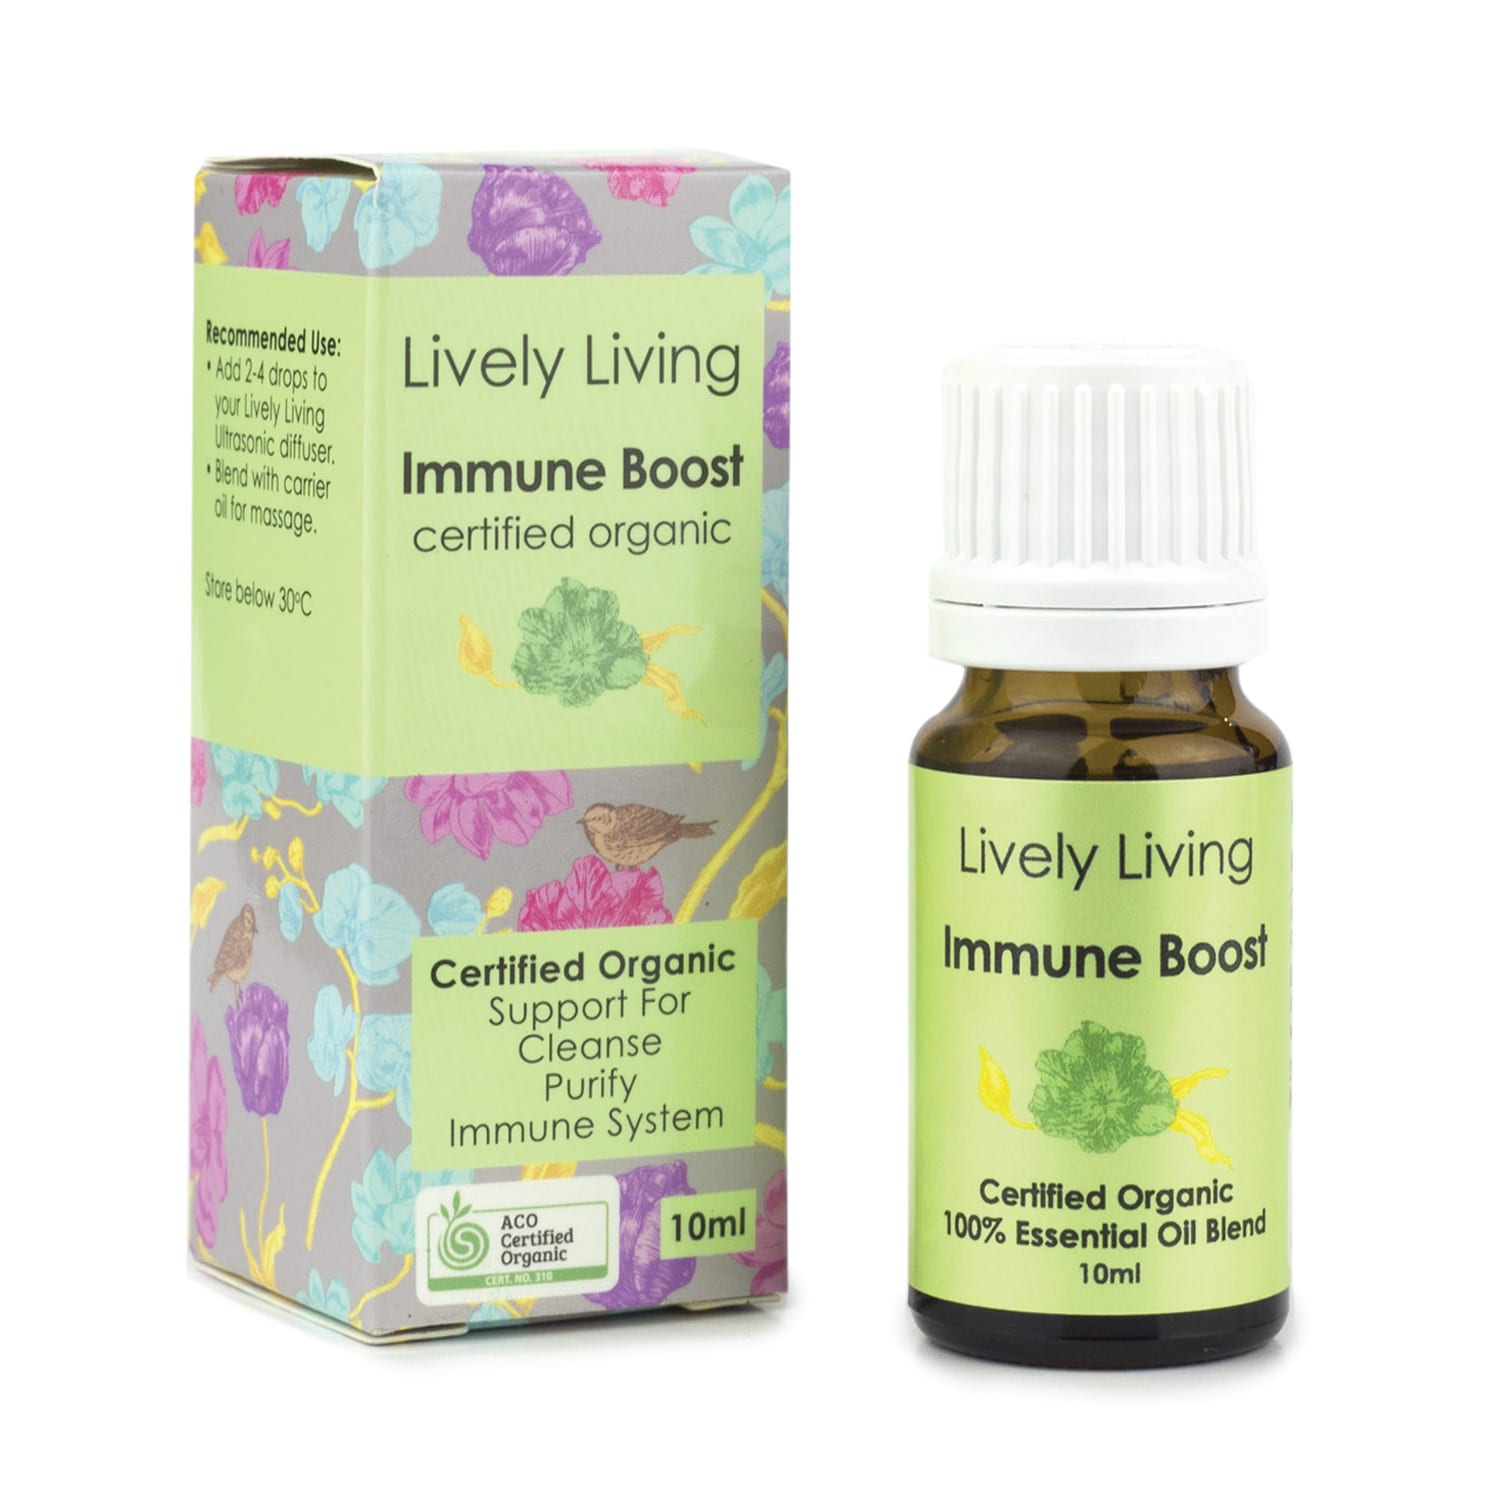 Lively Living Immune Boost